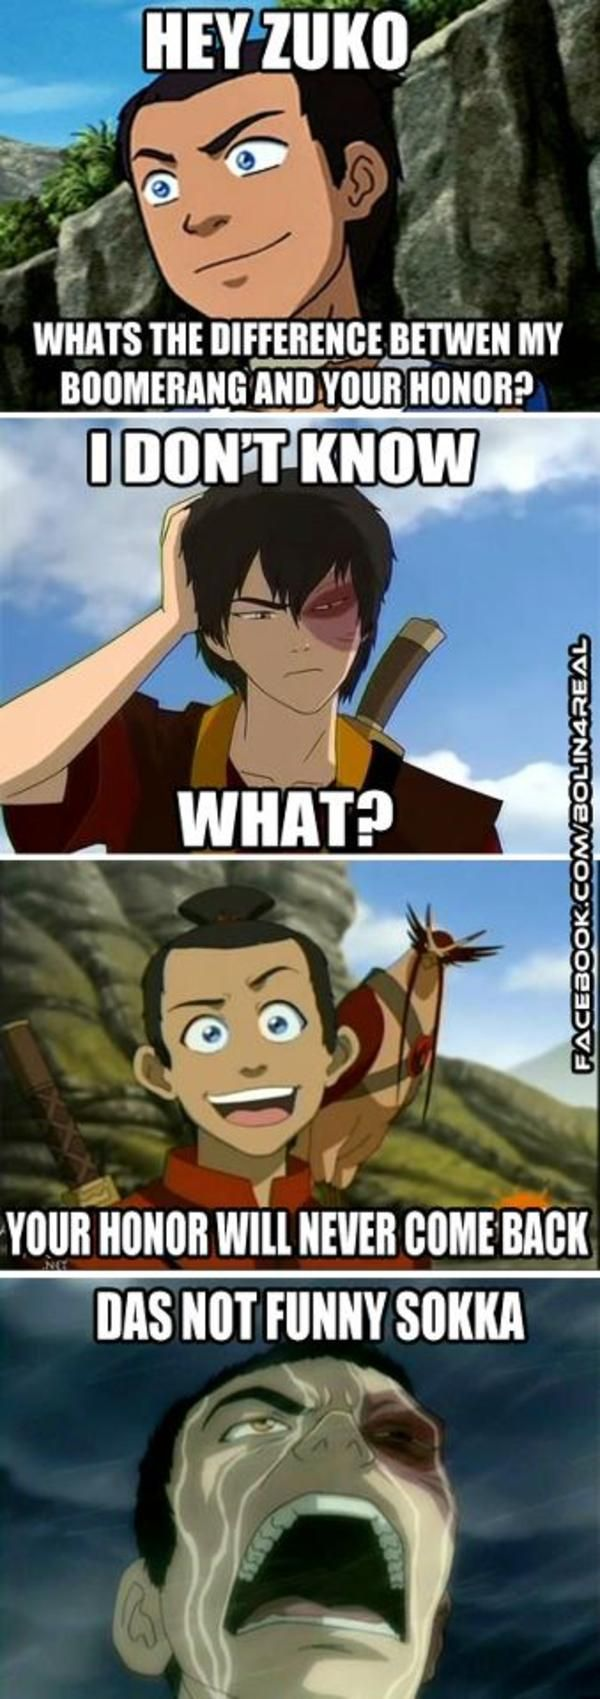 [Image - 457964] | Avatar: The Last Airbender / The Legend of Korra knowyourmeme.com